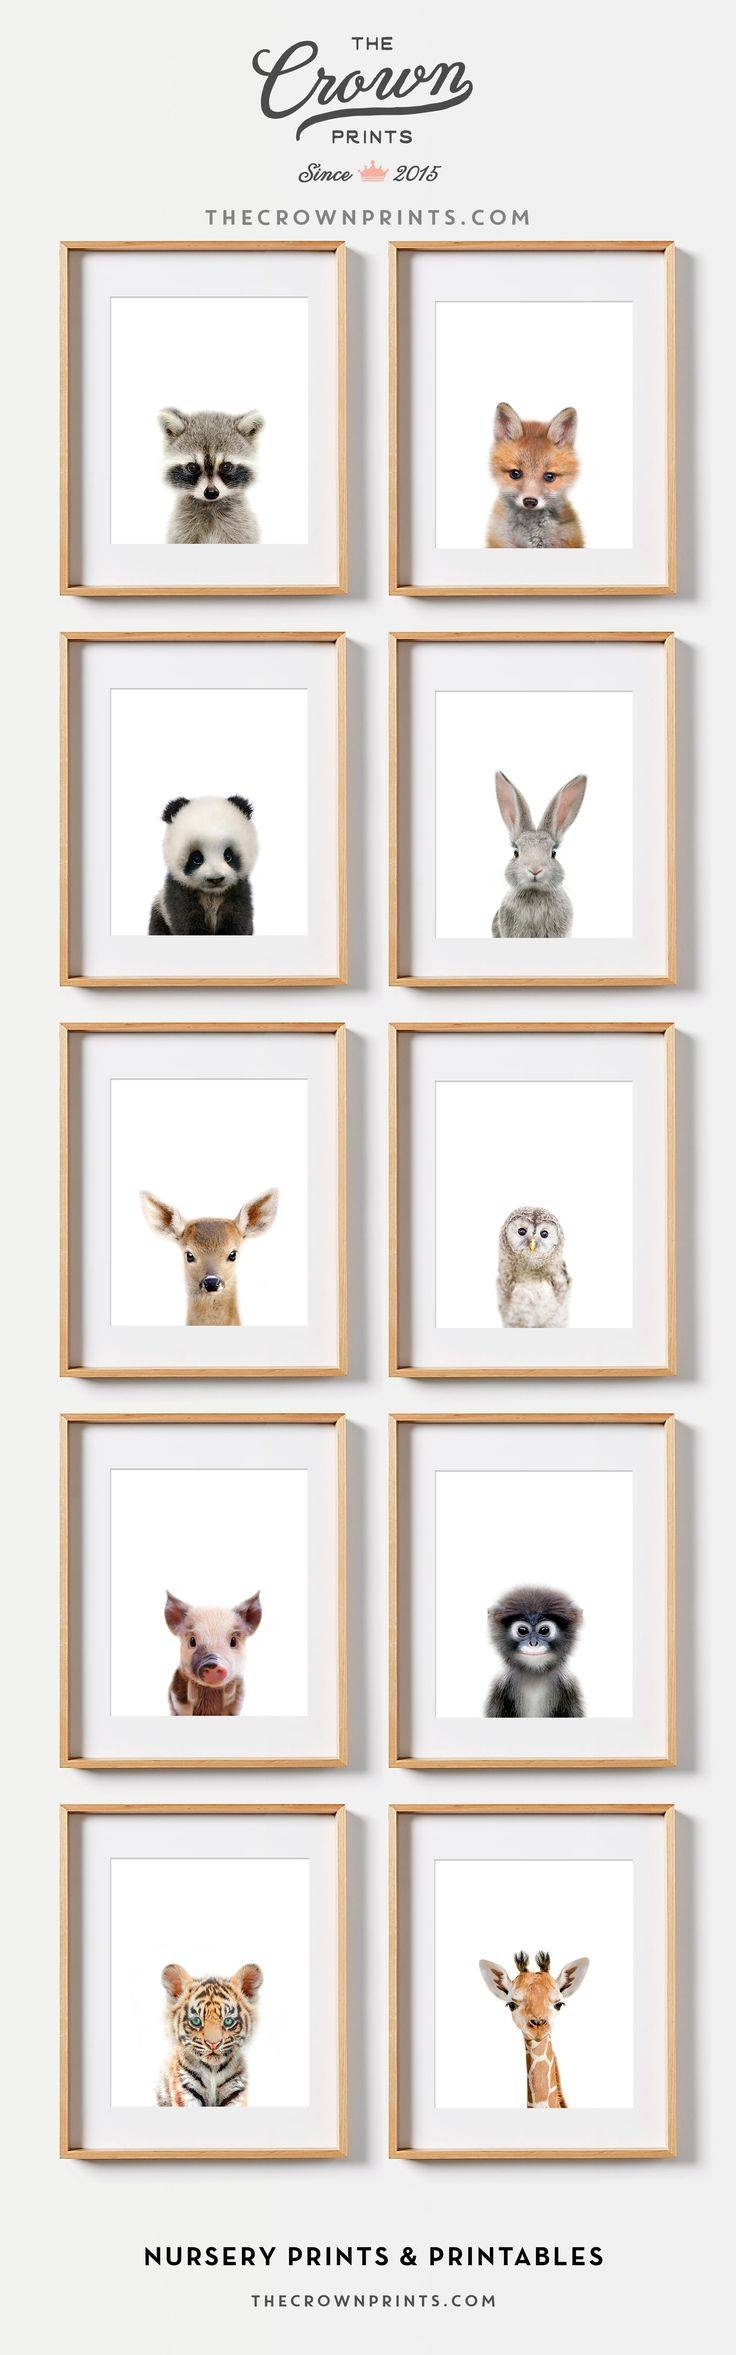 Best 25+ Baby Animal Nursery Ideas On Pinterest | Animal Nursery Within Recent Baby Animal Wall Art (View 3 of 20)